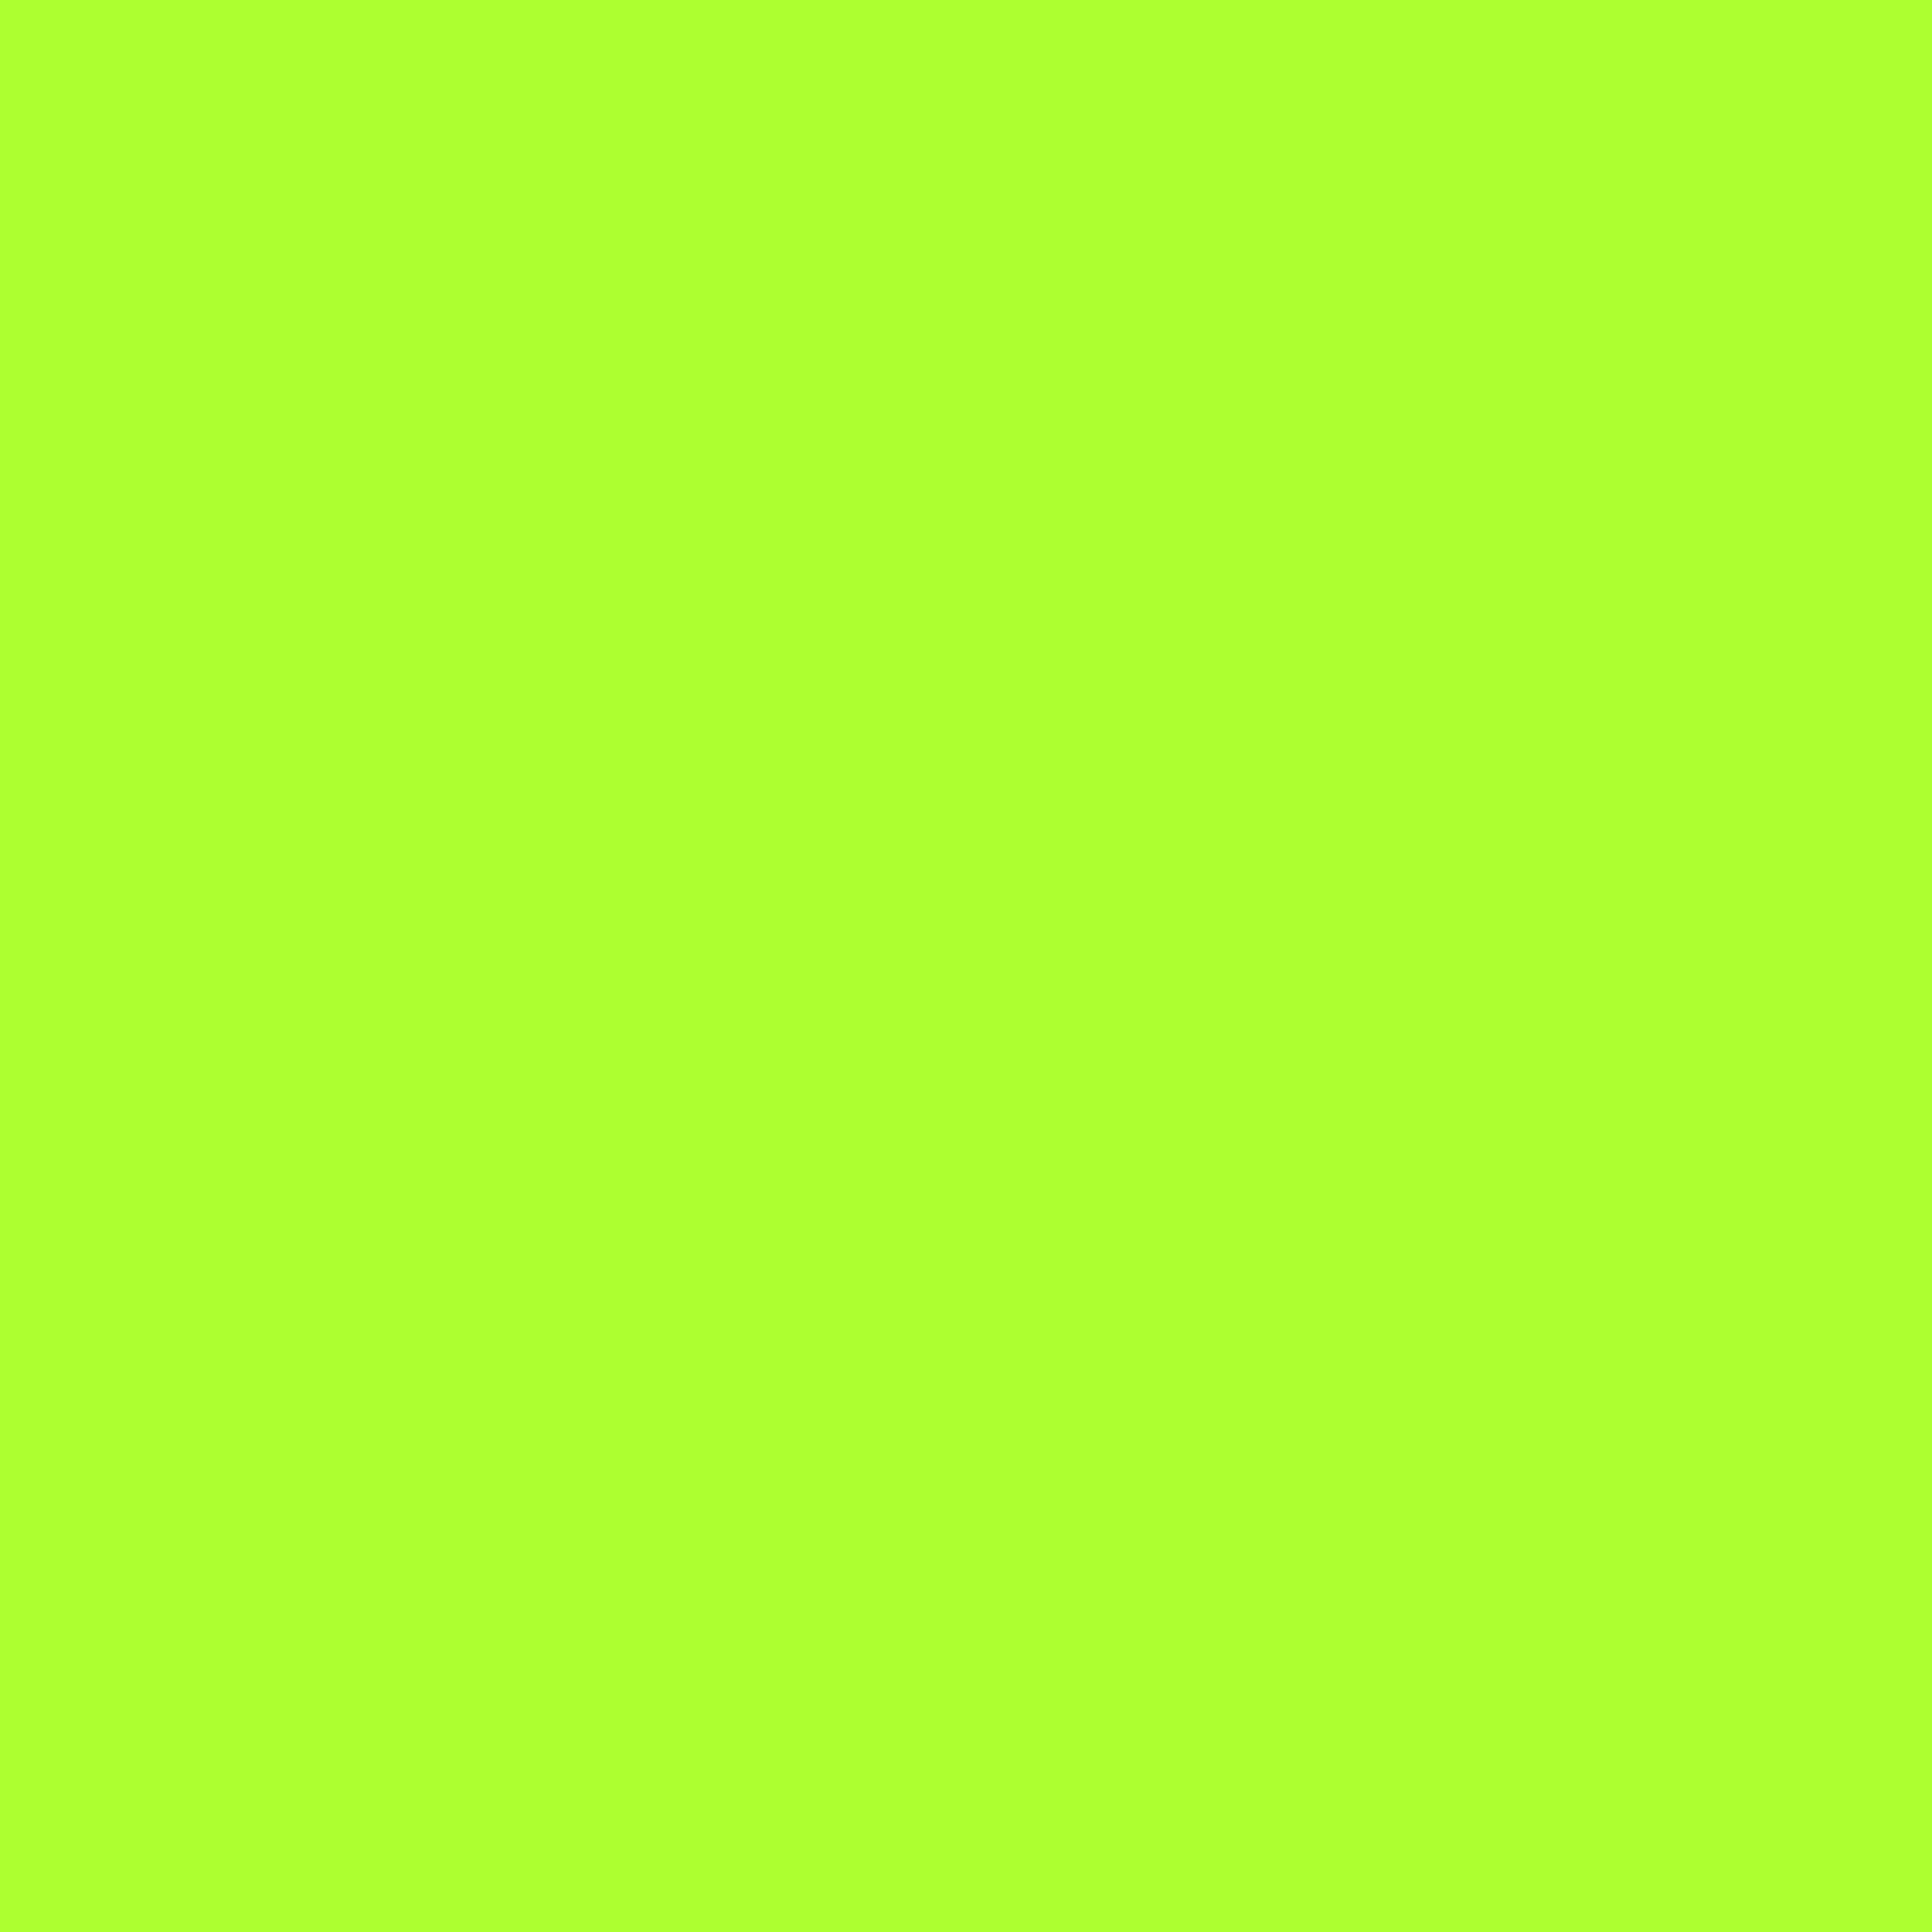 3600x3600 Green-yellow Solid Color Background